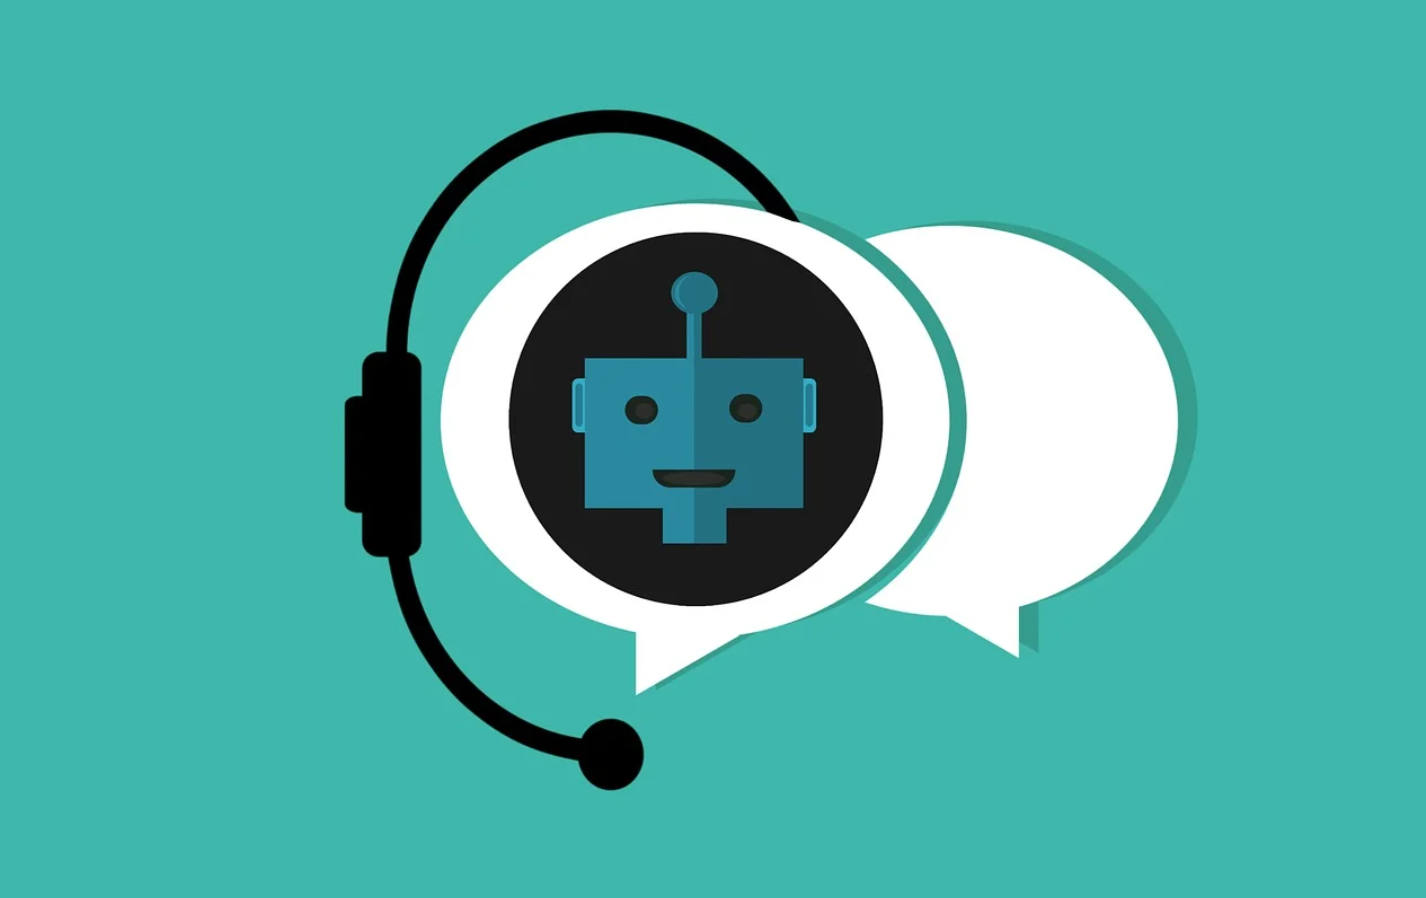 robot in a speech bubble wearing a wireless headset